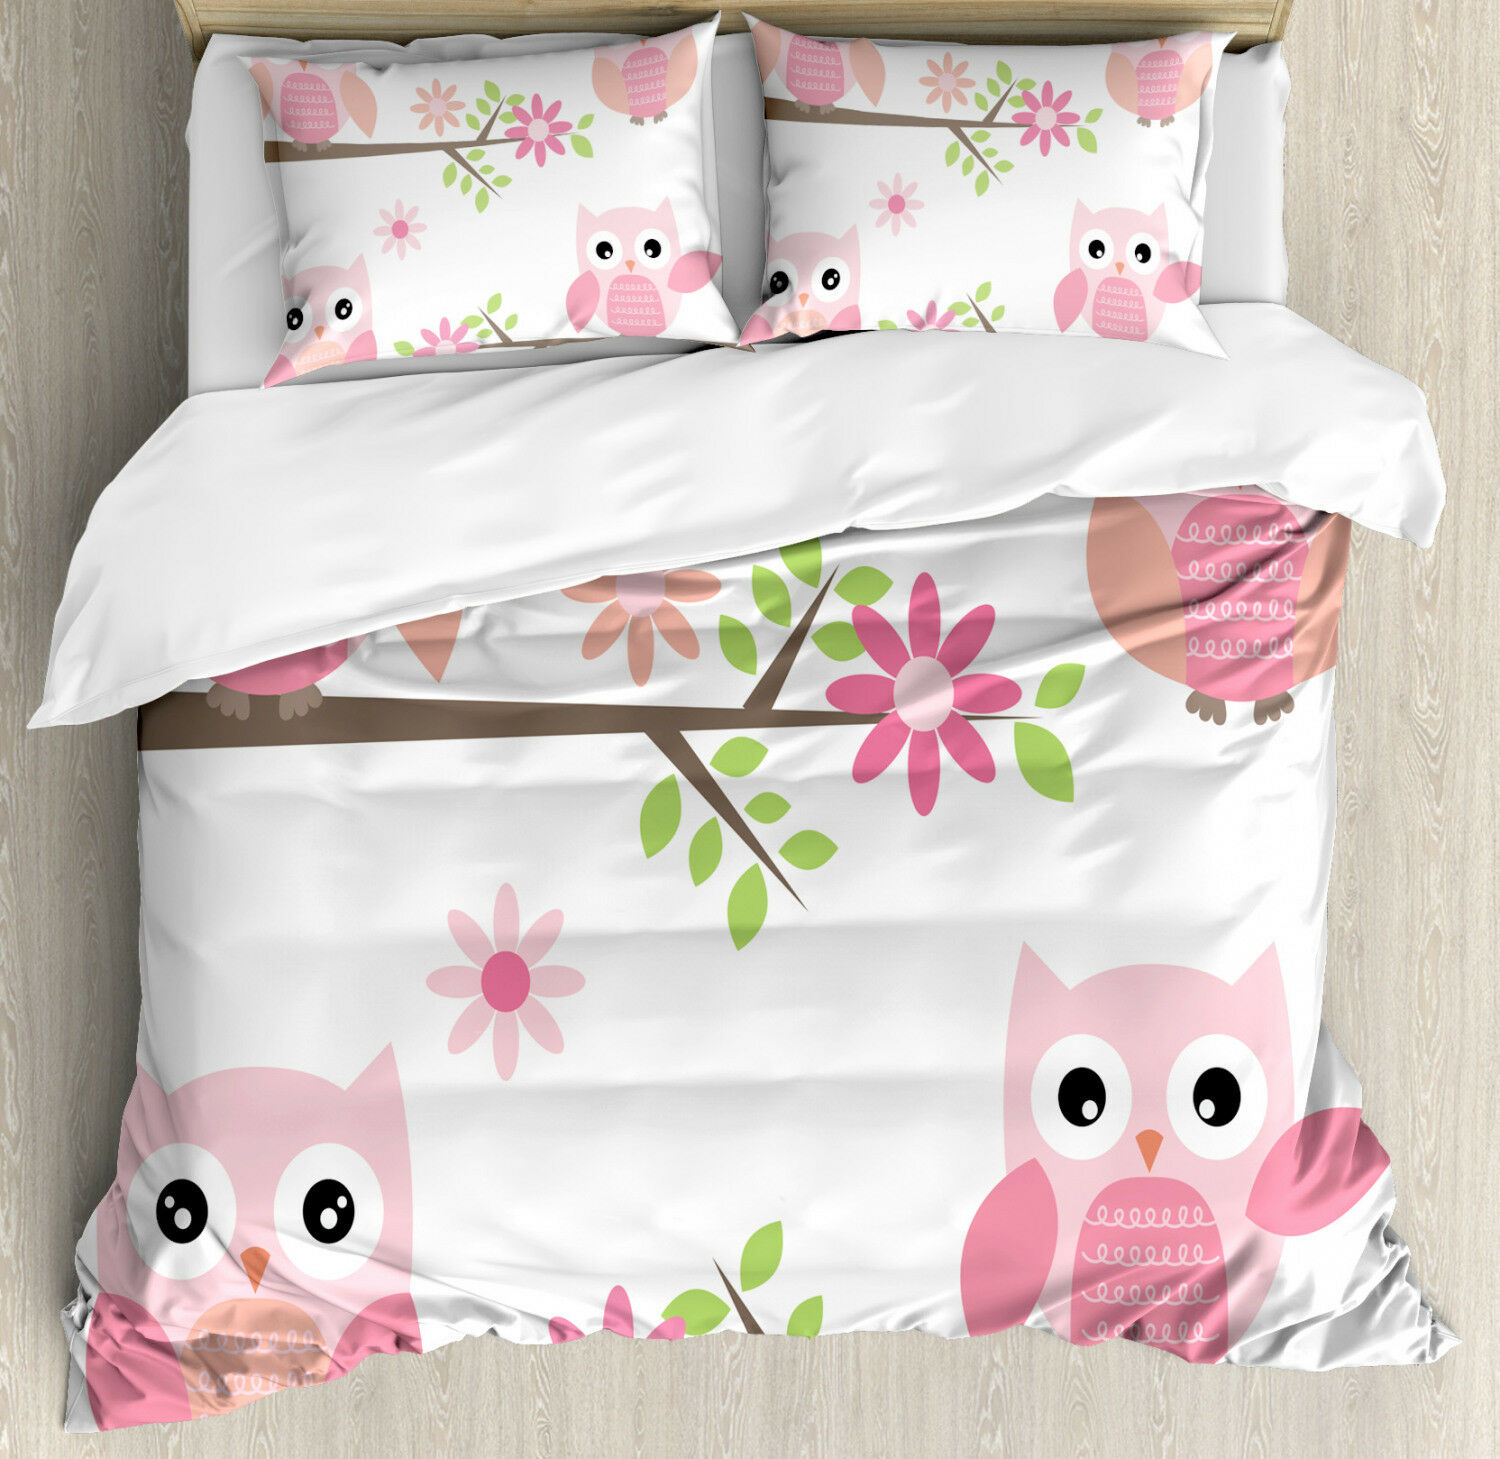 Owl Duvet Cover Set with Pillow Shams Spring Floral Baby Owls Print